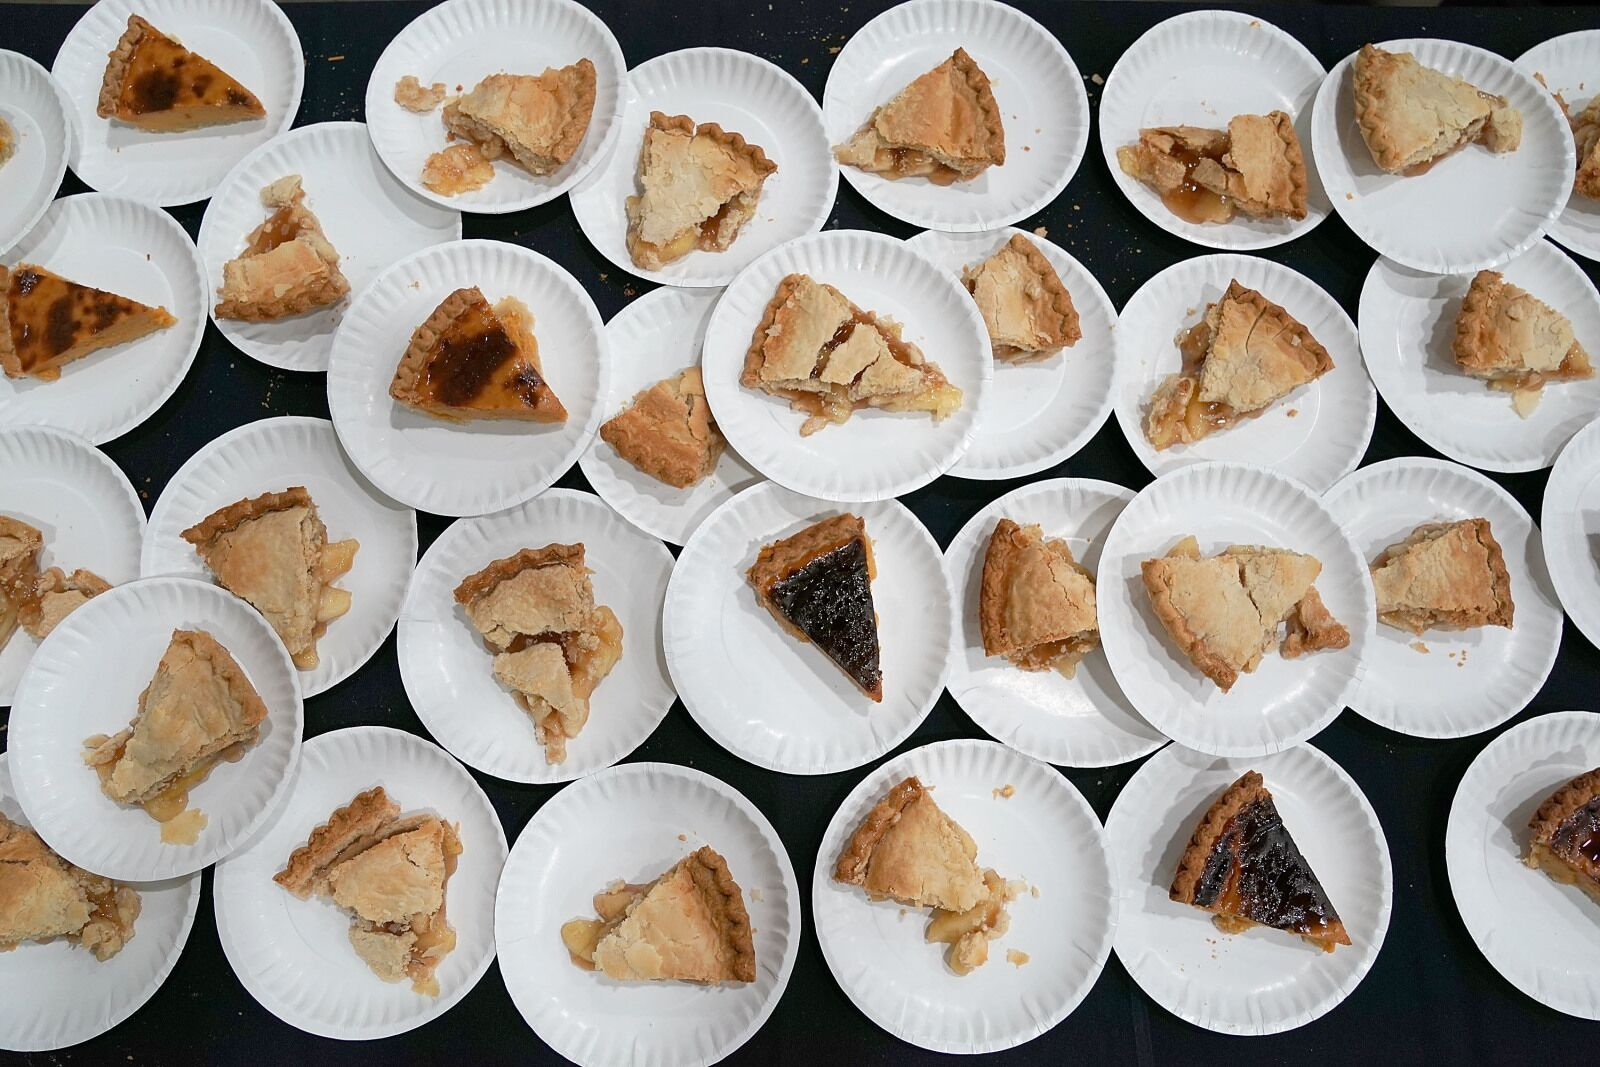 Pies perfect to indulge in on National Pi Day